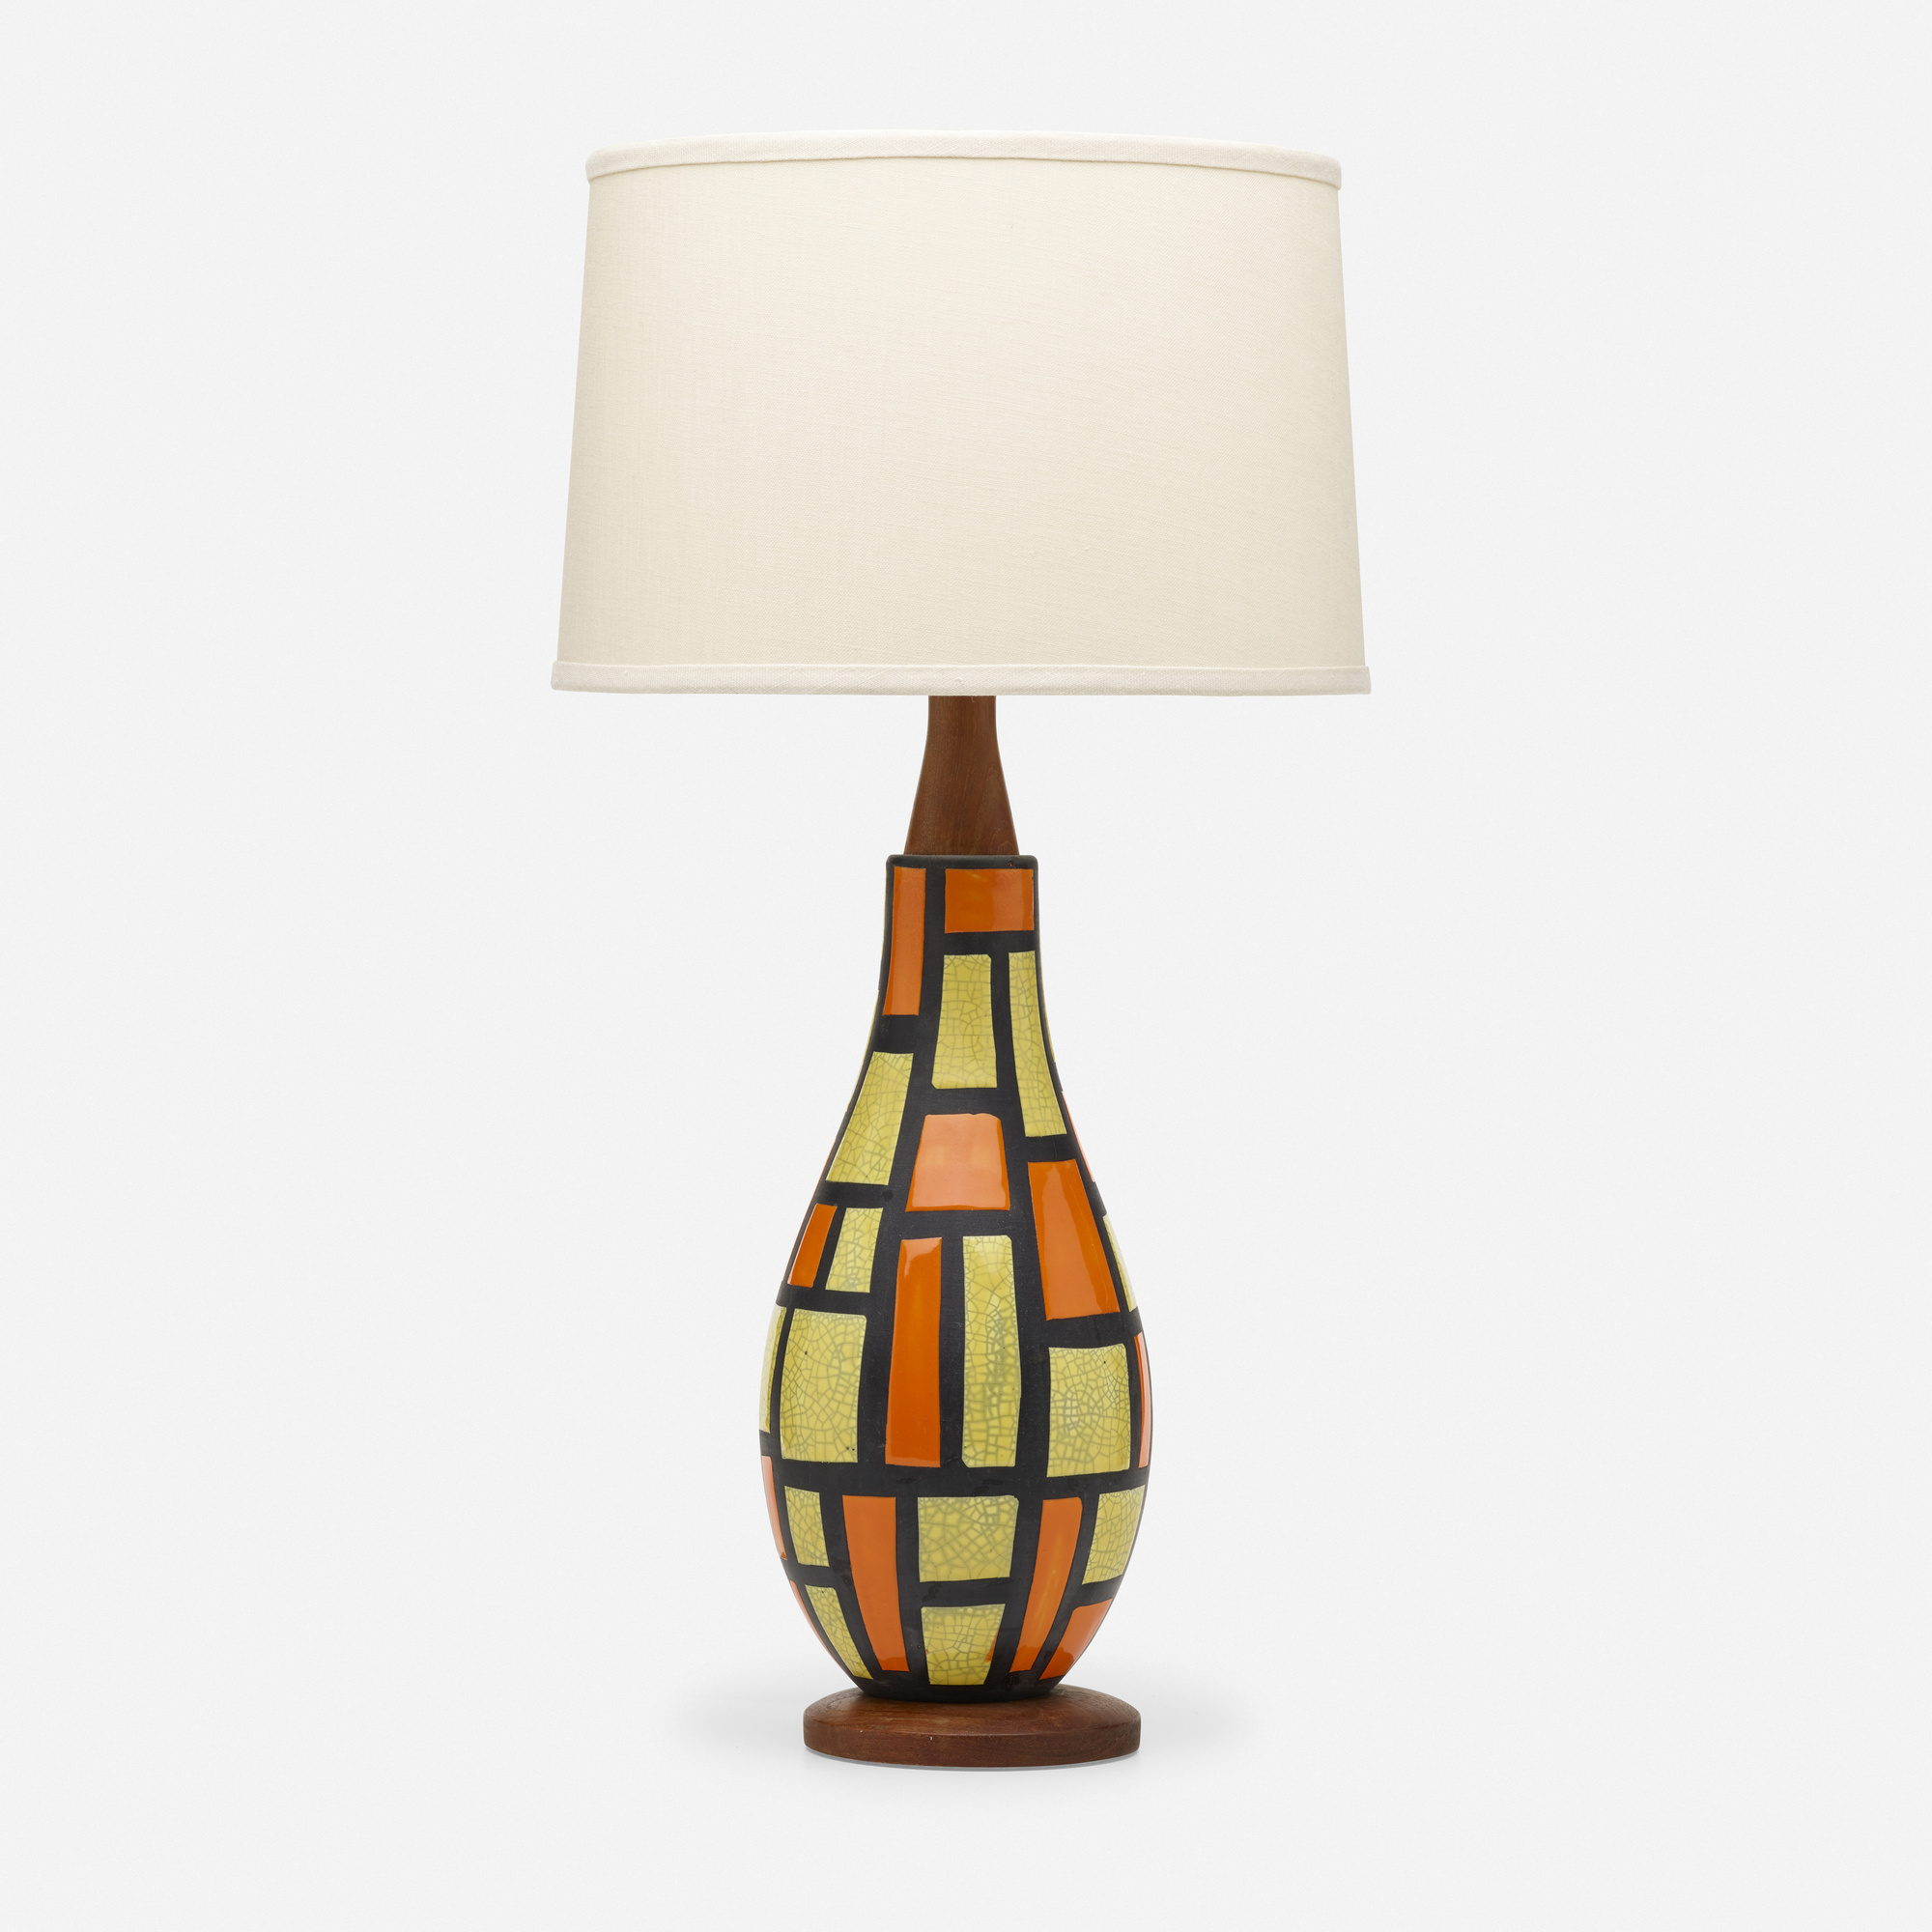 410 Modern Table Lamp Living Contemporary 29 July 2020 Auctions Rago Auctions